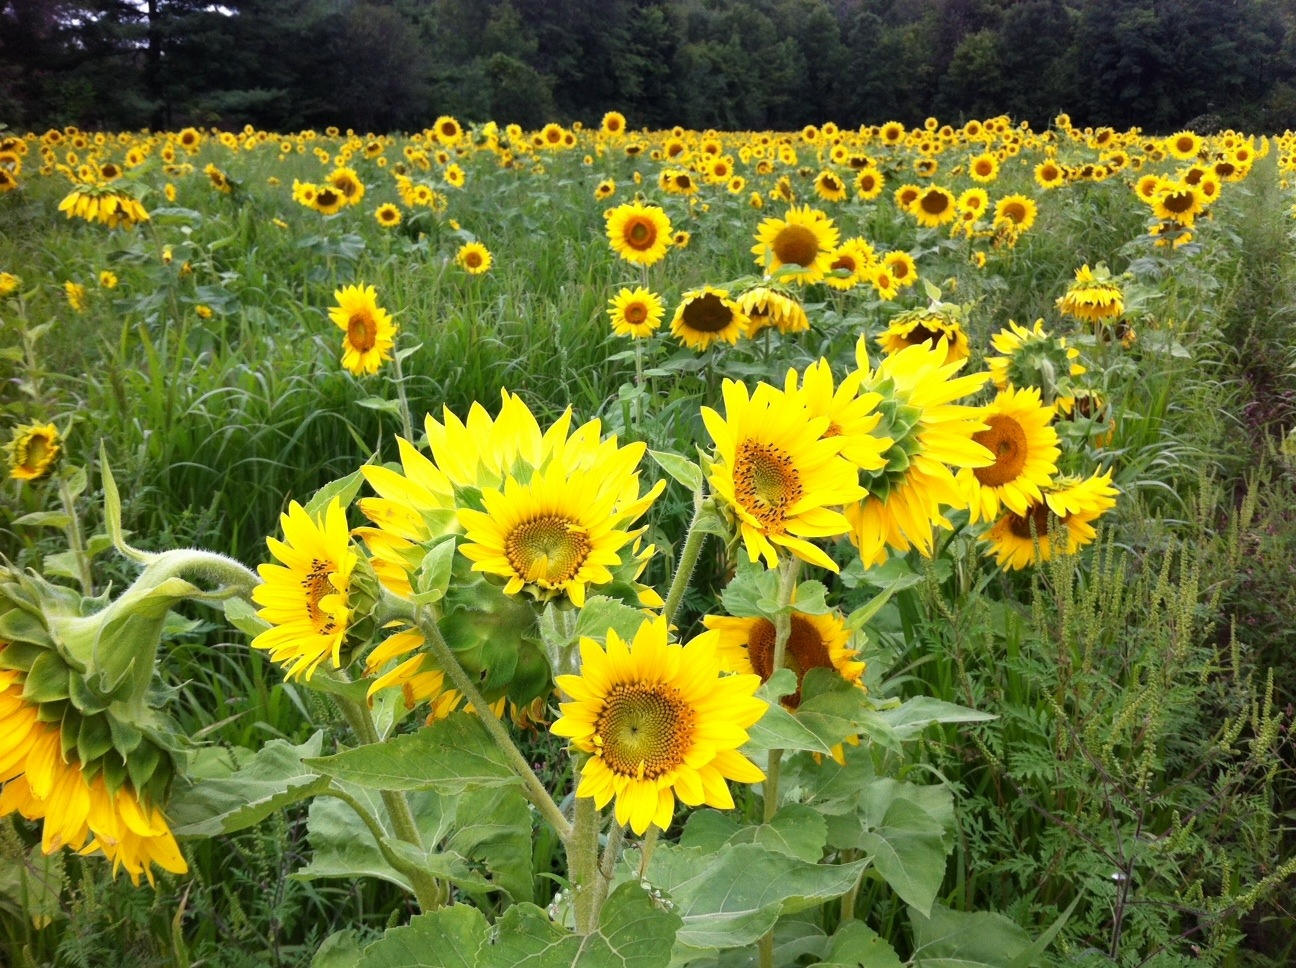 Sunflower Field at Genesee St. and Pavement Rd., Lancaster, N.Y., Aug. 2014